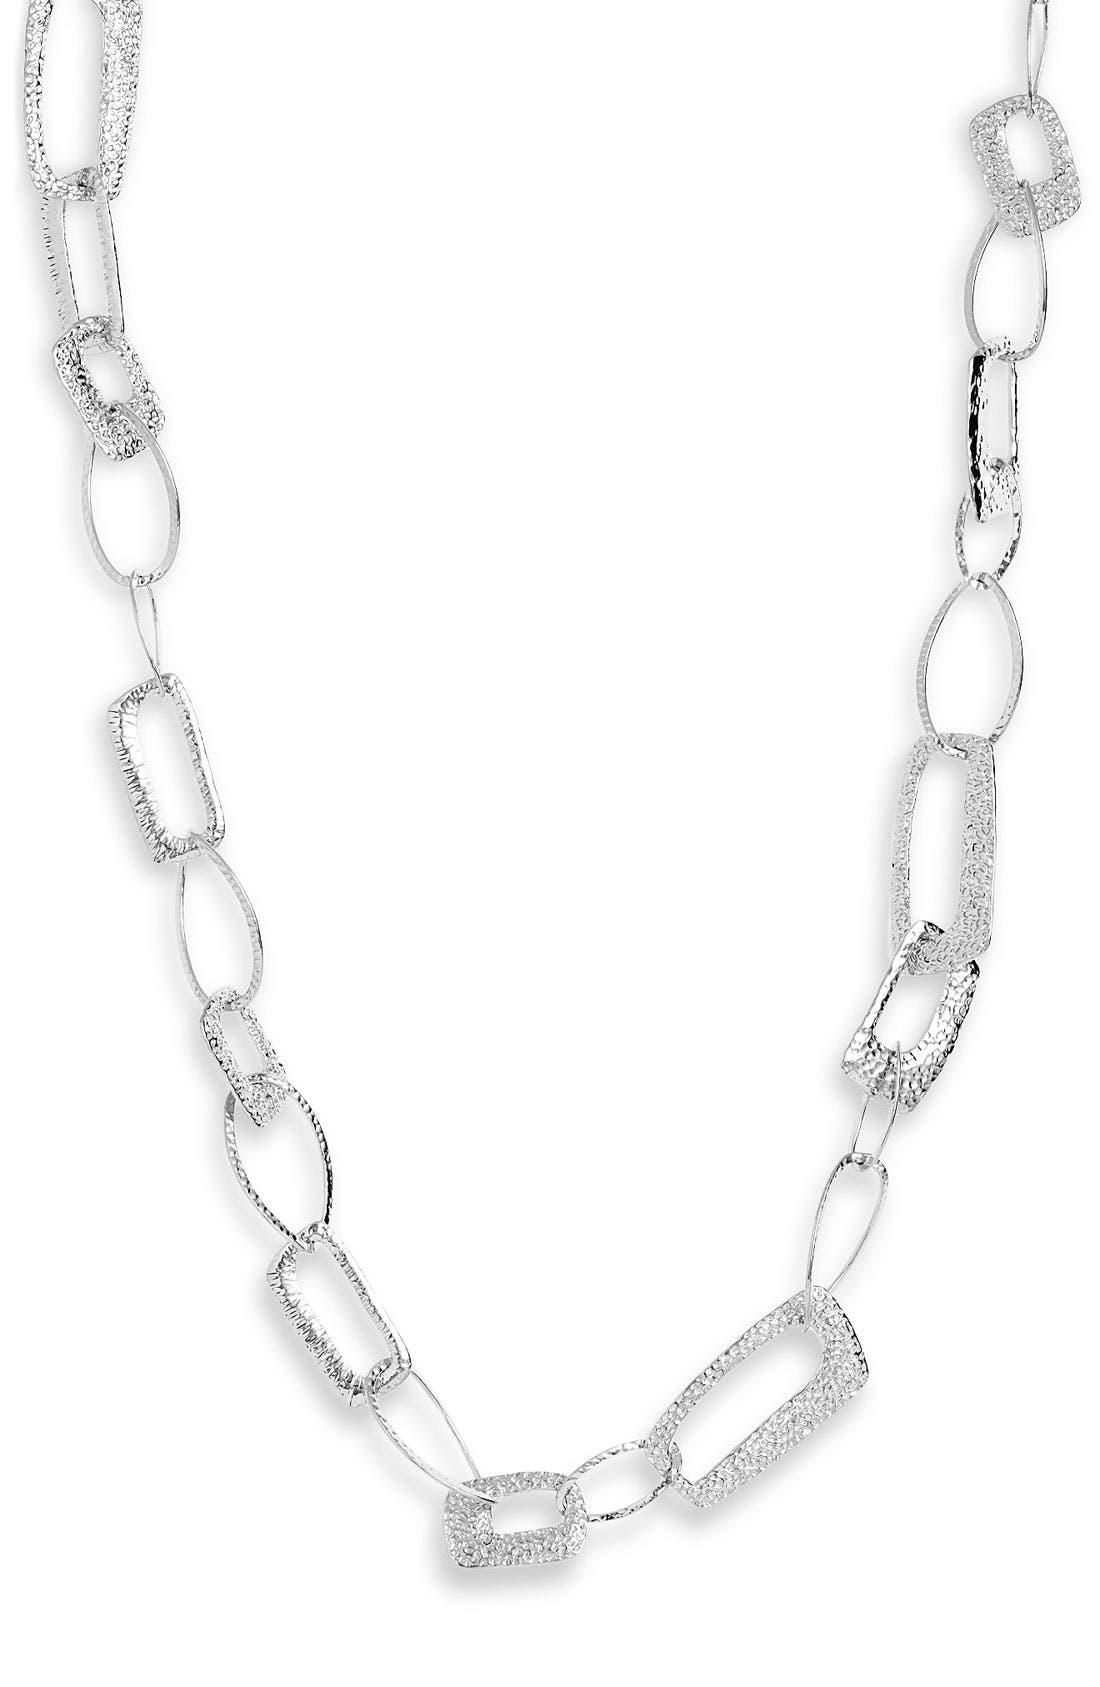 Alternate Image 1 Selected - Nordstrom 'Neo Geometric' Long Textured Necklace